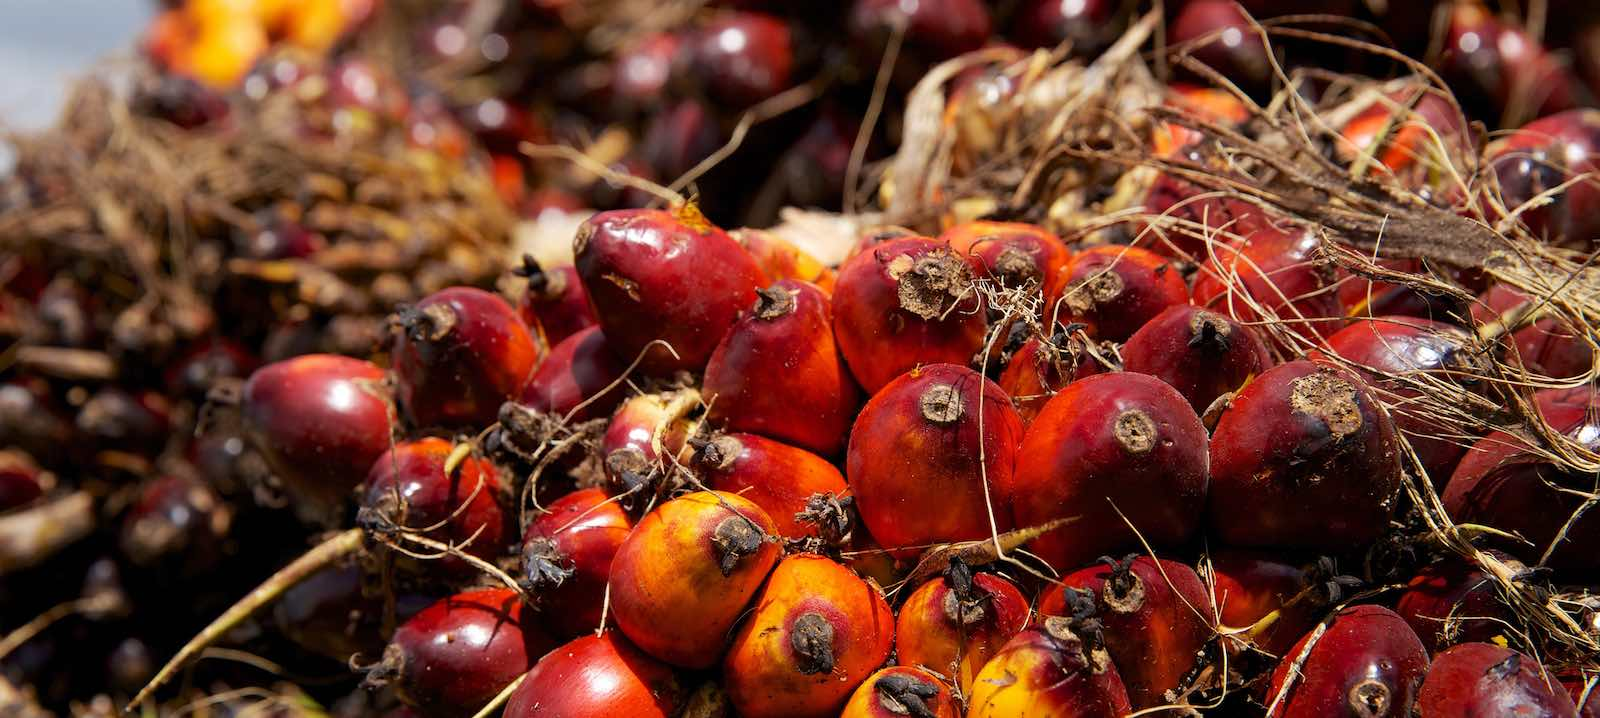 Palm oil fruits after harvest (Photo: Nanang Sujana/CIFOR)